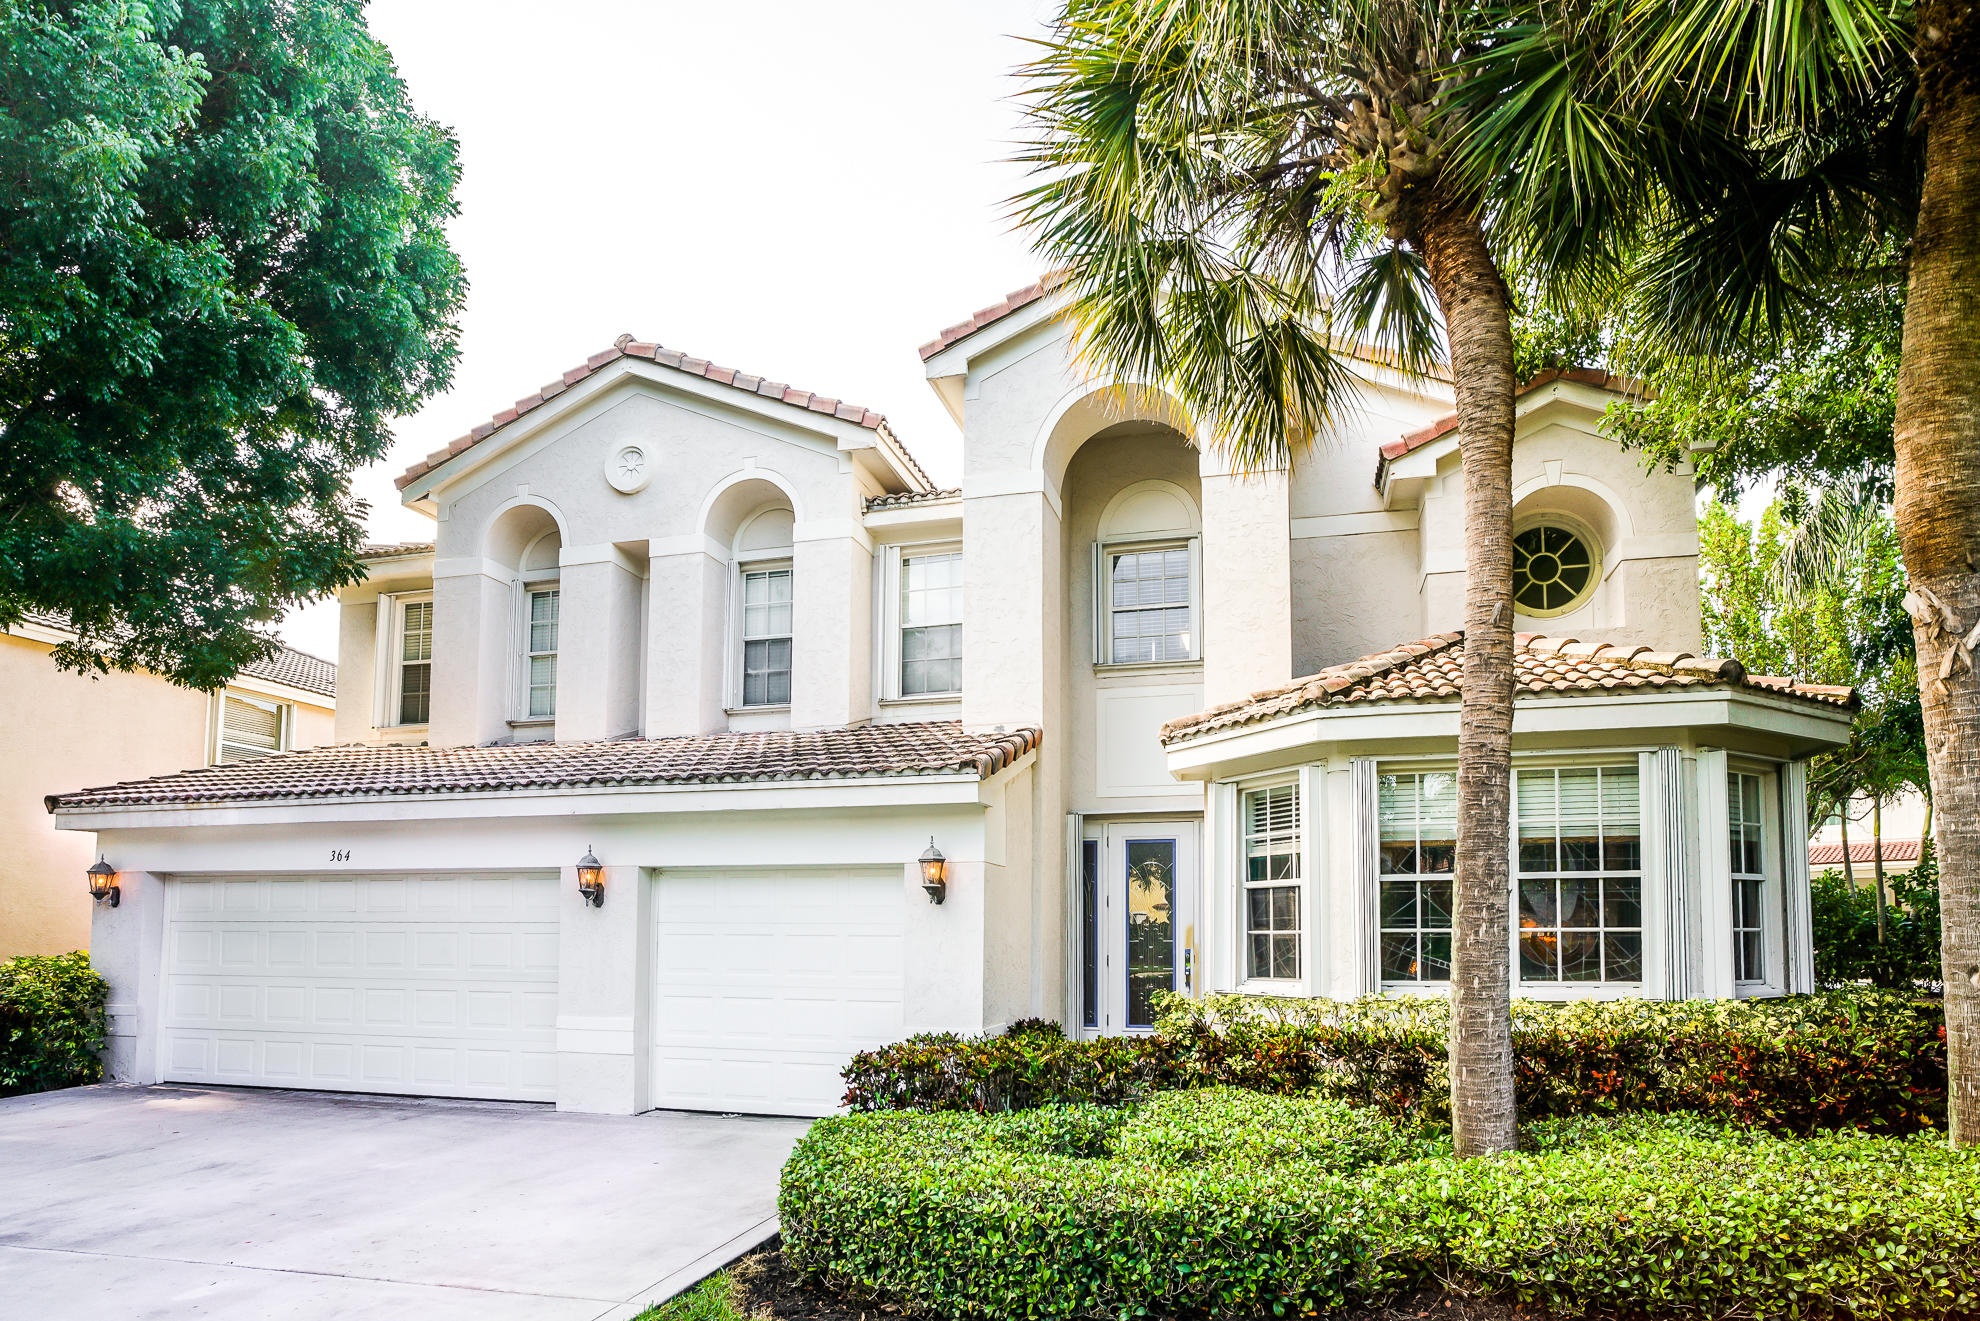 Photo of 364 Magnolia Drive, Jupiter, FL 33458